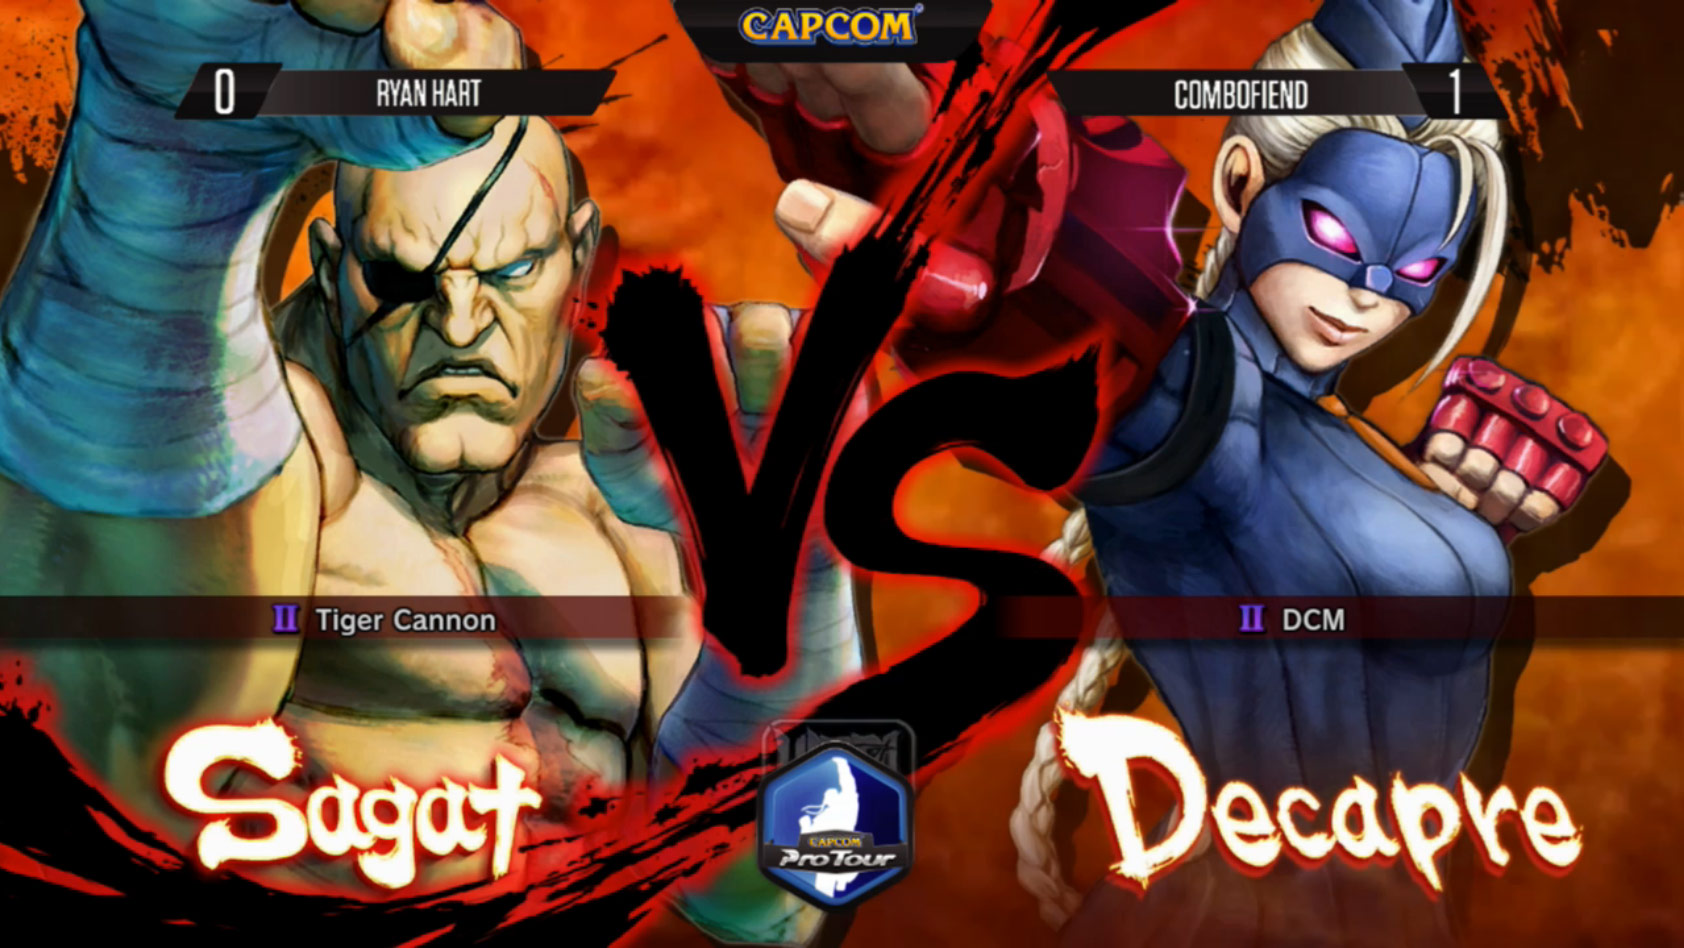 Decapre in Ultra Street Fighter 4 along with new character select screen #3